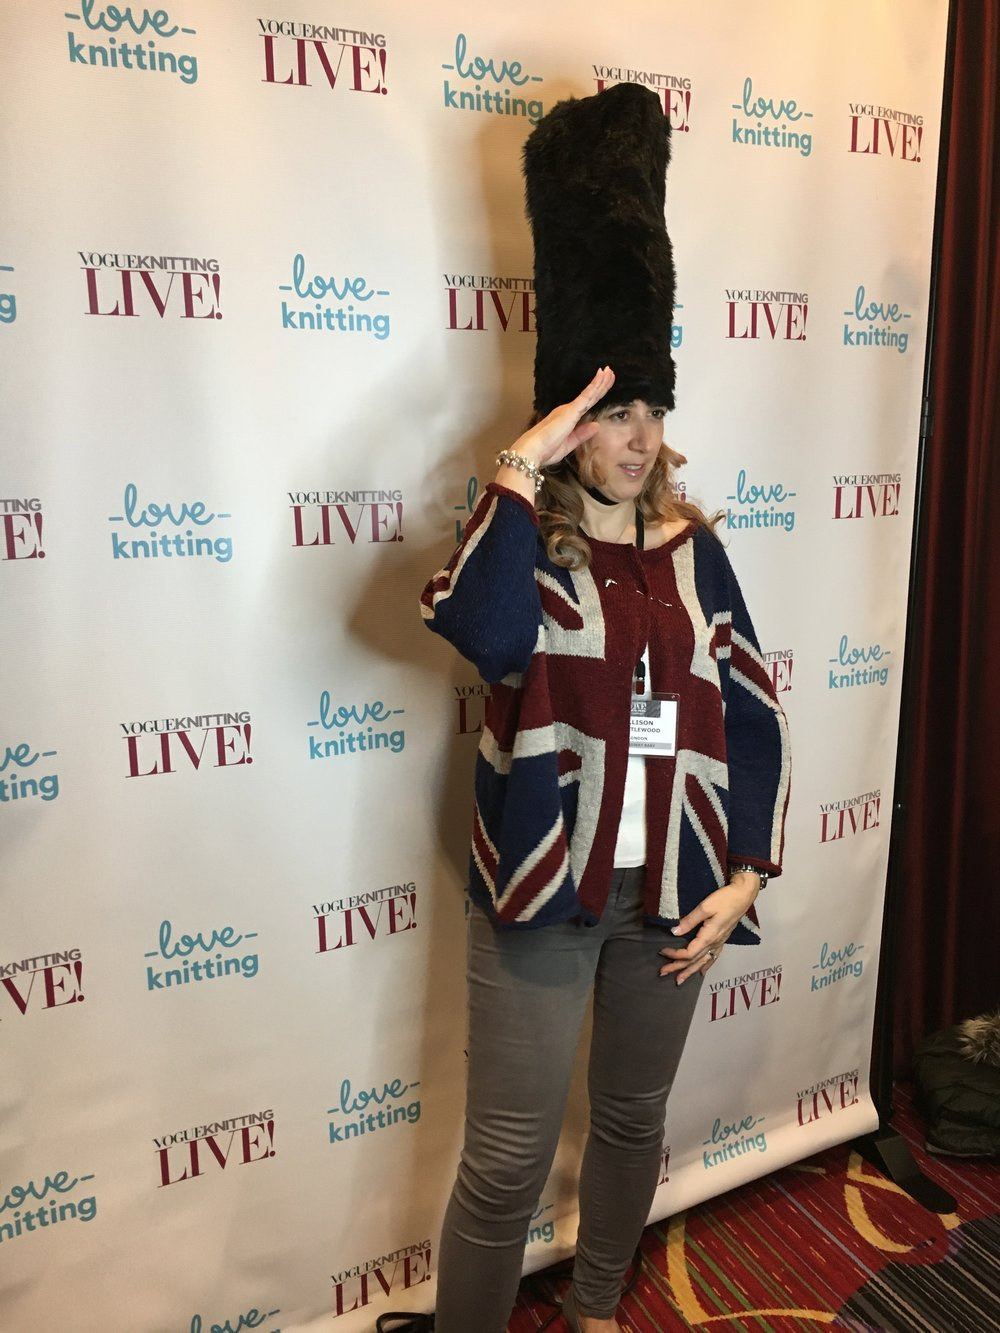 The folks at the LoveKnitting photo booth took one look at my Union Jack cardi and handed me this hat prop. I swear!